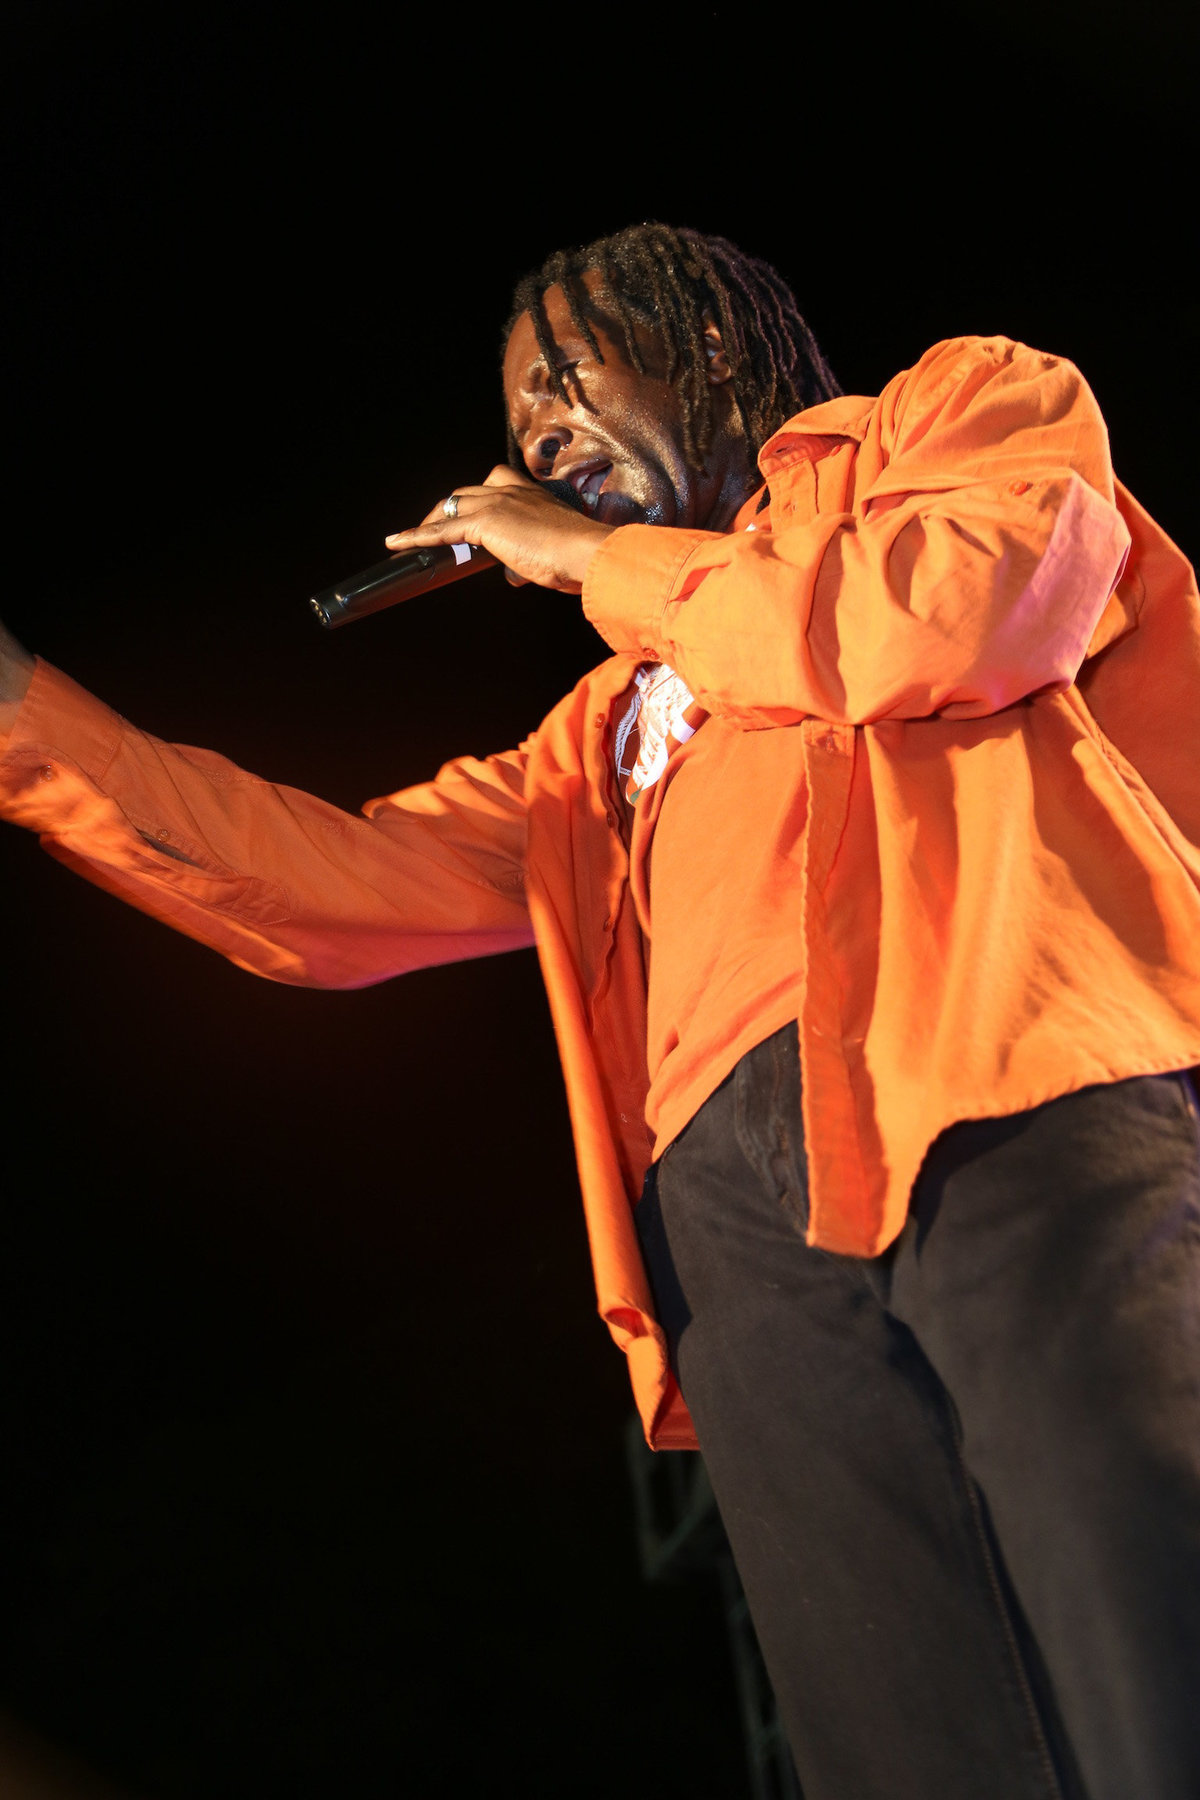 A portrait of international singer David Rudder wearing an orange shirt  while performing on stage. Photo by Ross Photography, Trinidad, W.I..